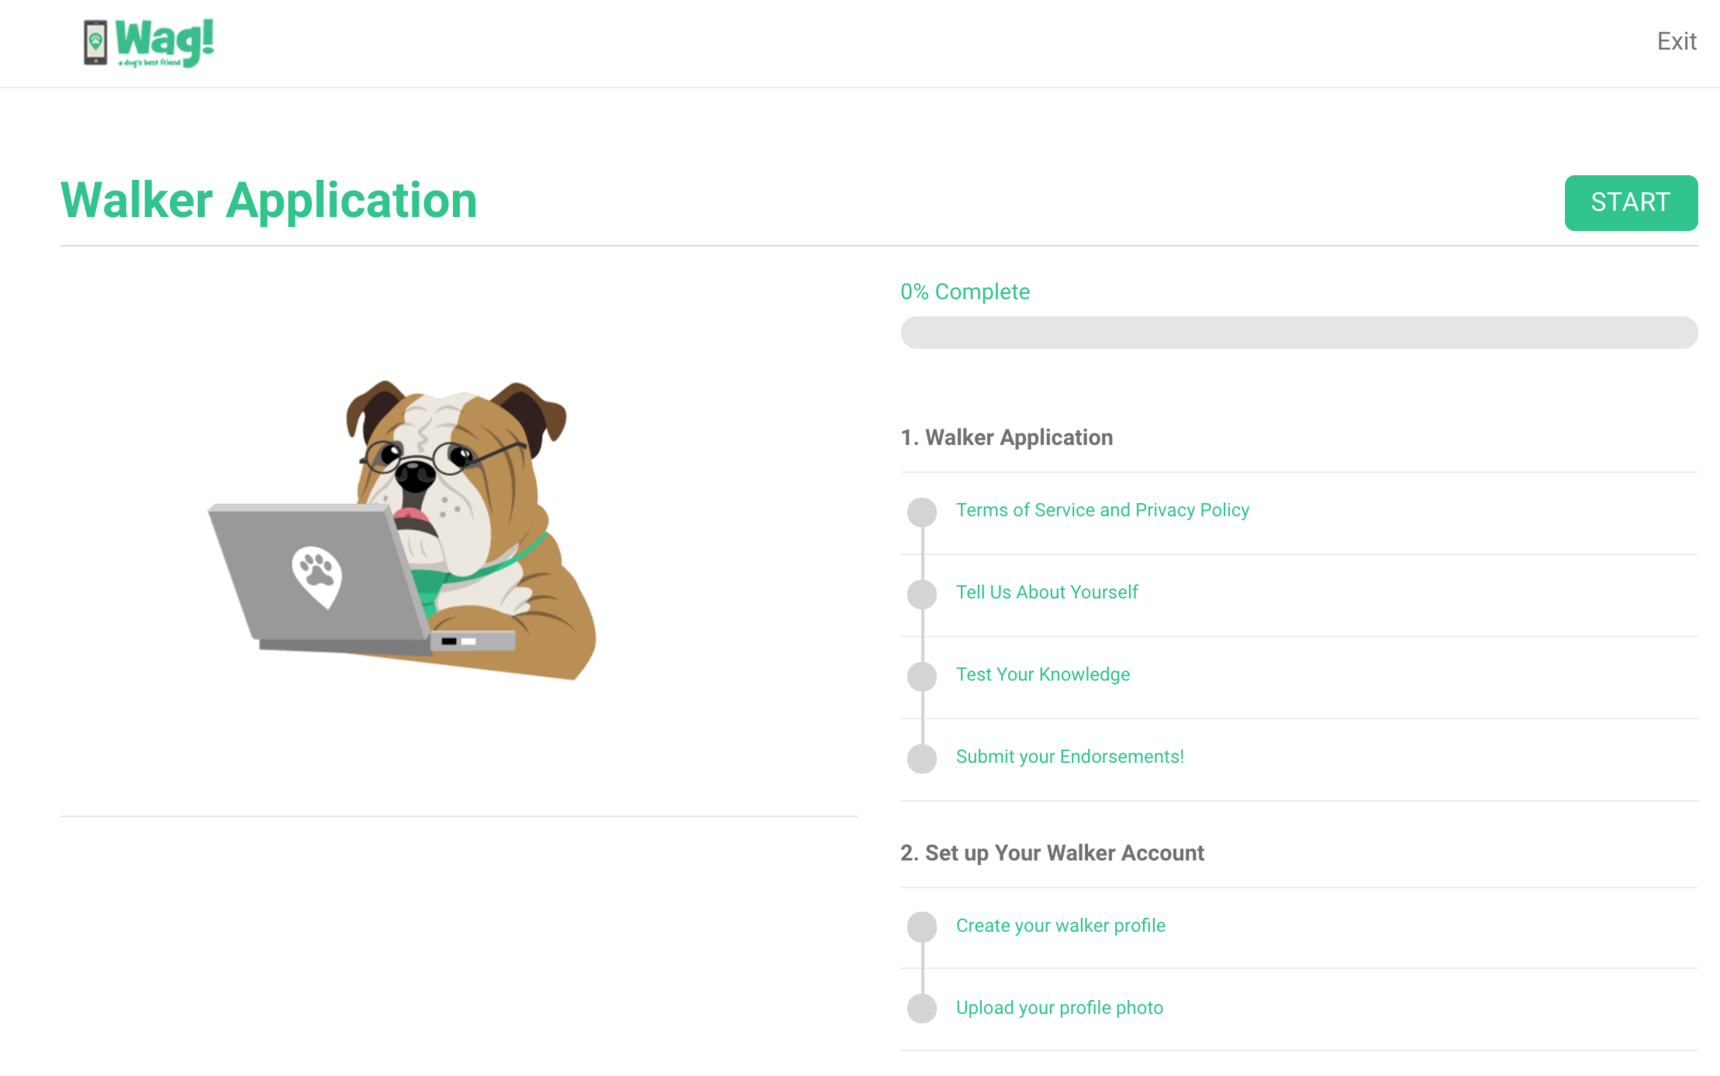 Walker Application Guide - Sign-up Process - Wag!